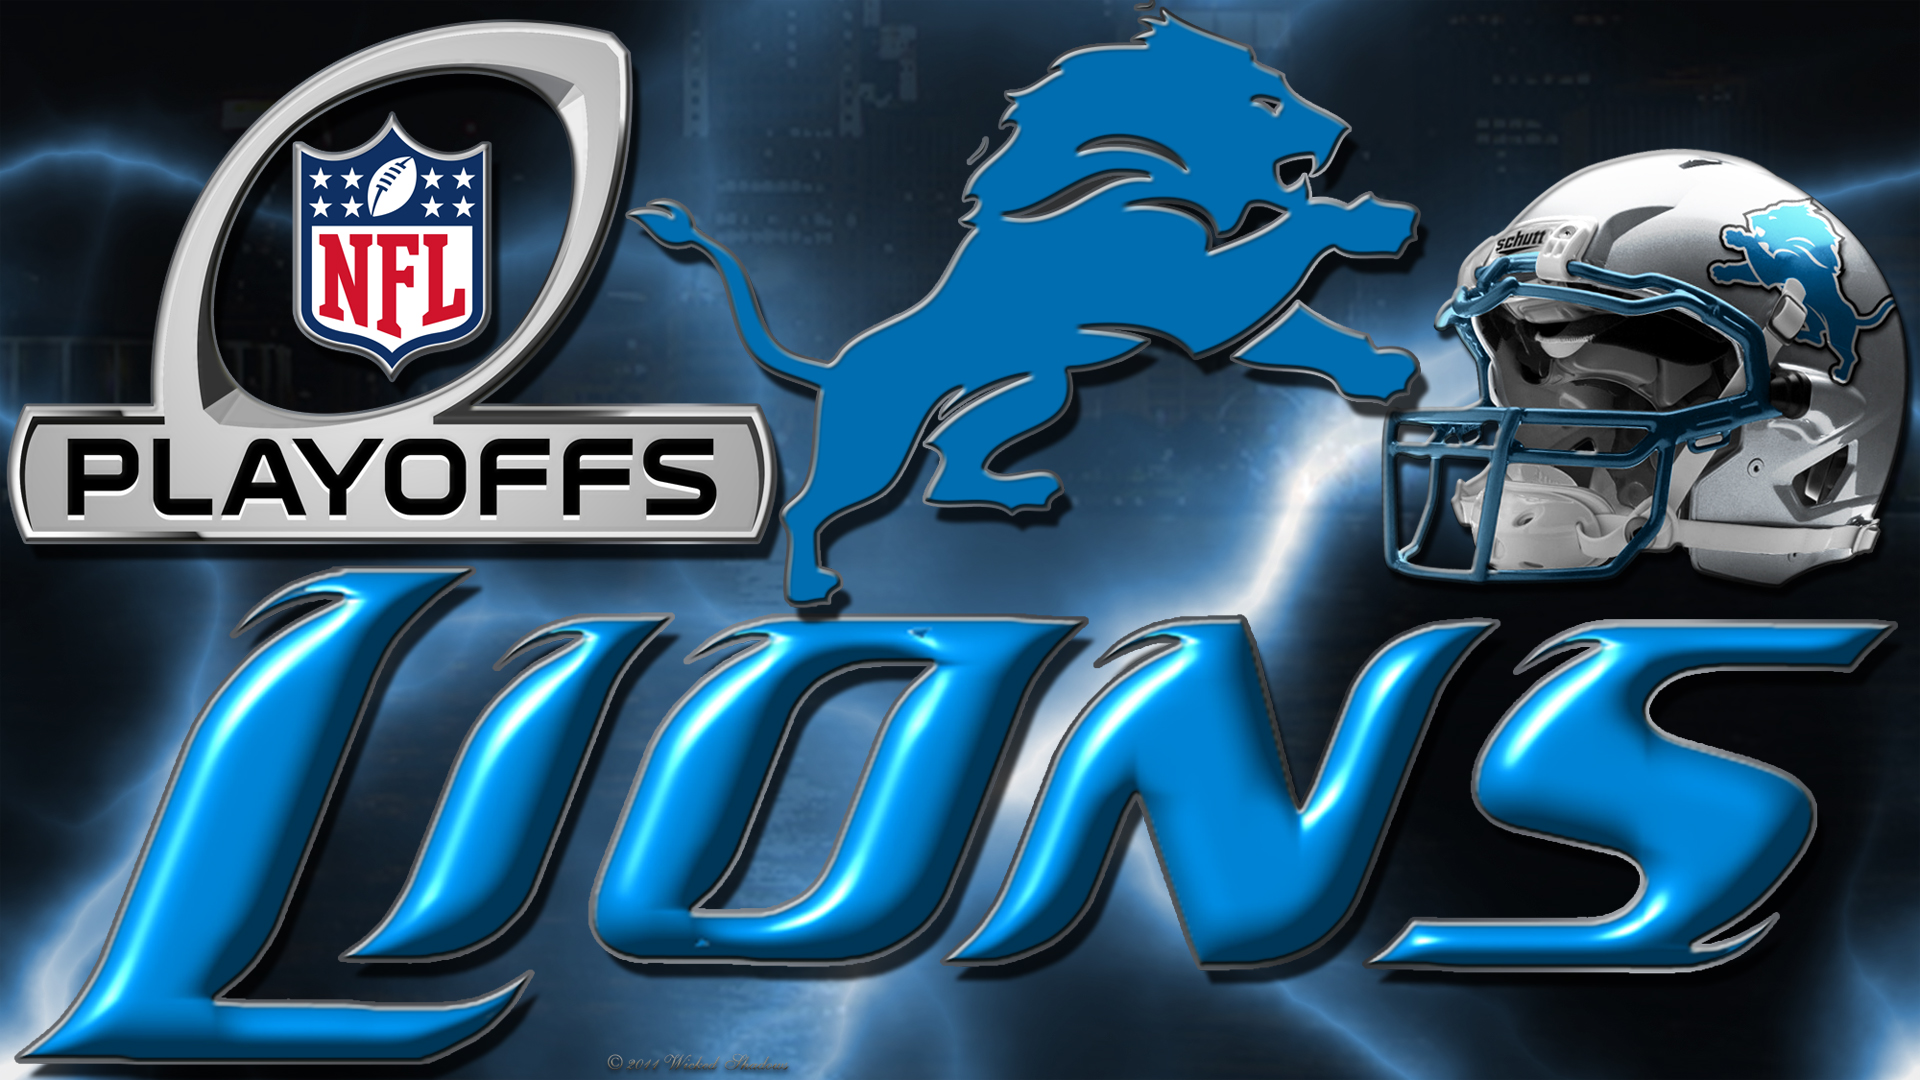 Wallpapers By Wicked Shadows Detroit Lions 2012 Playoffs Wallpaper 1920x1080